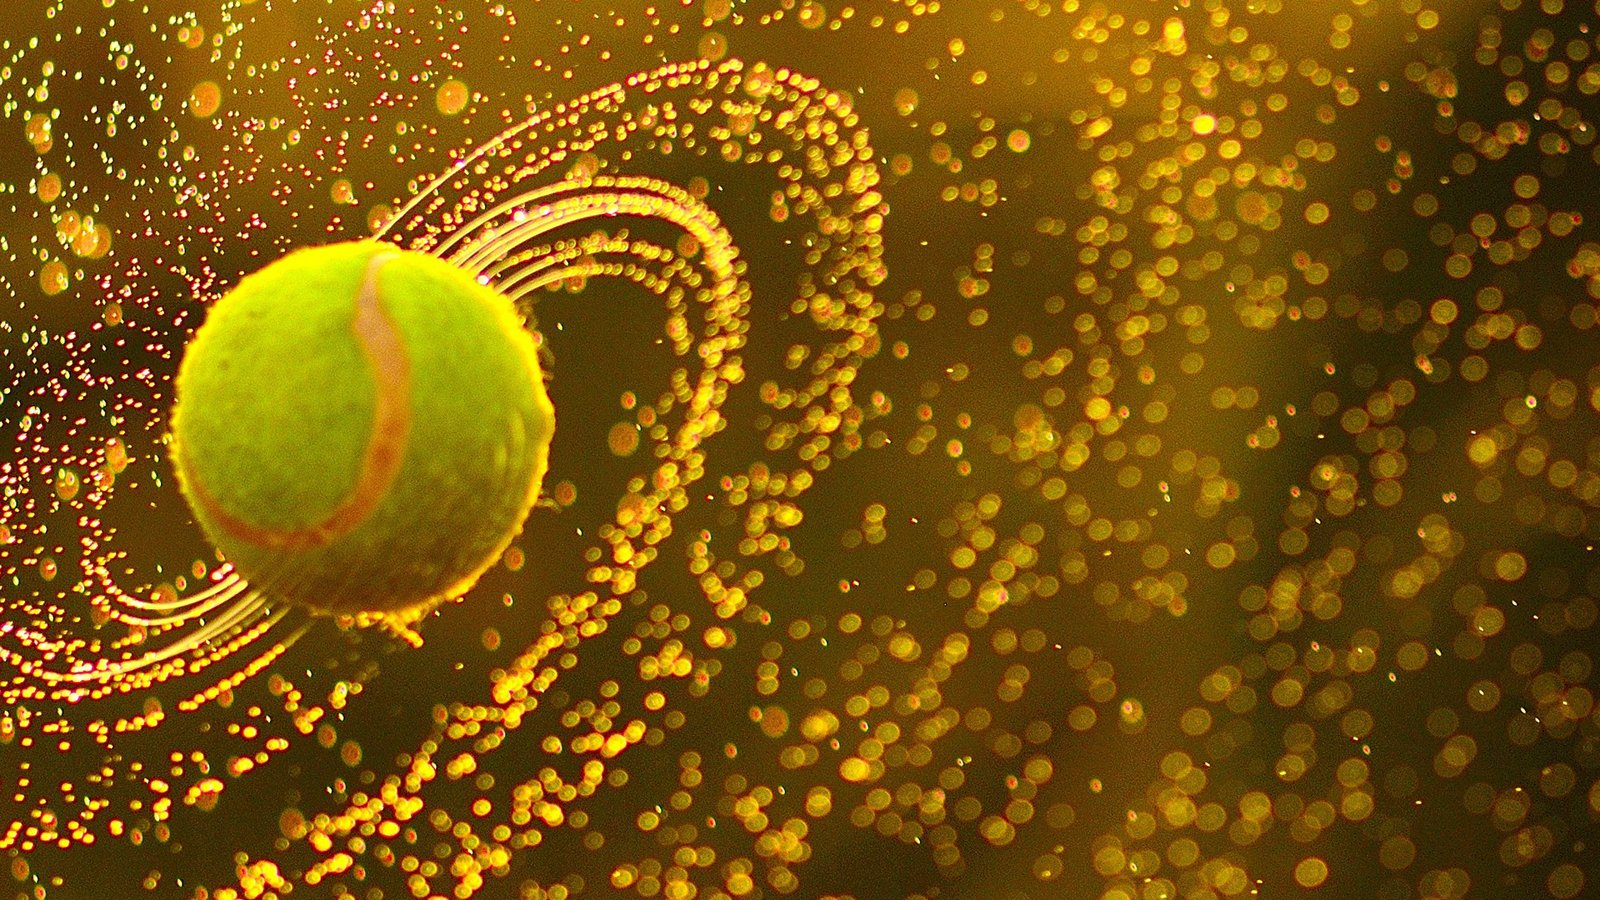 tennis ball is a ball designed for the sport of tennis approximately 1600x900